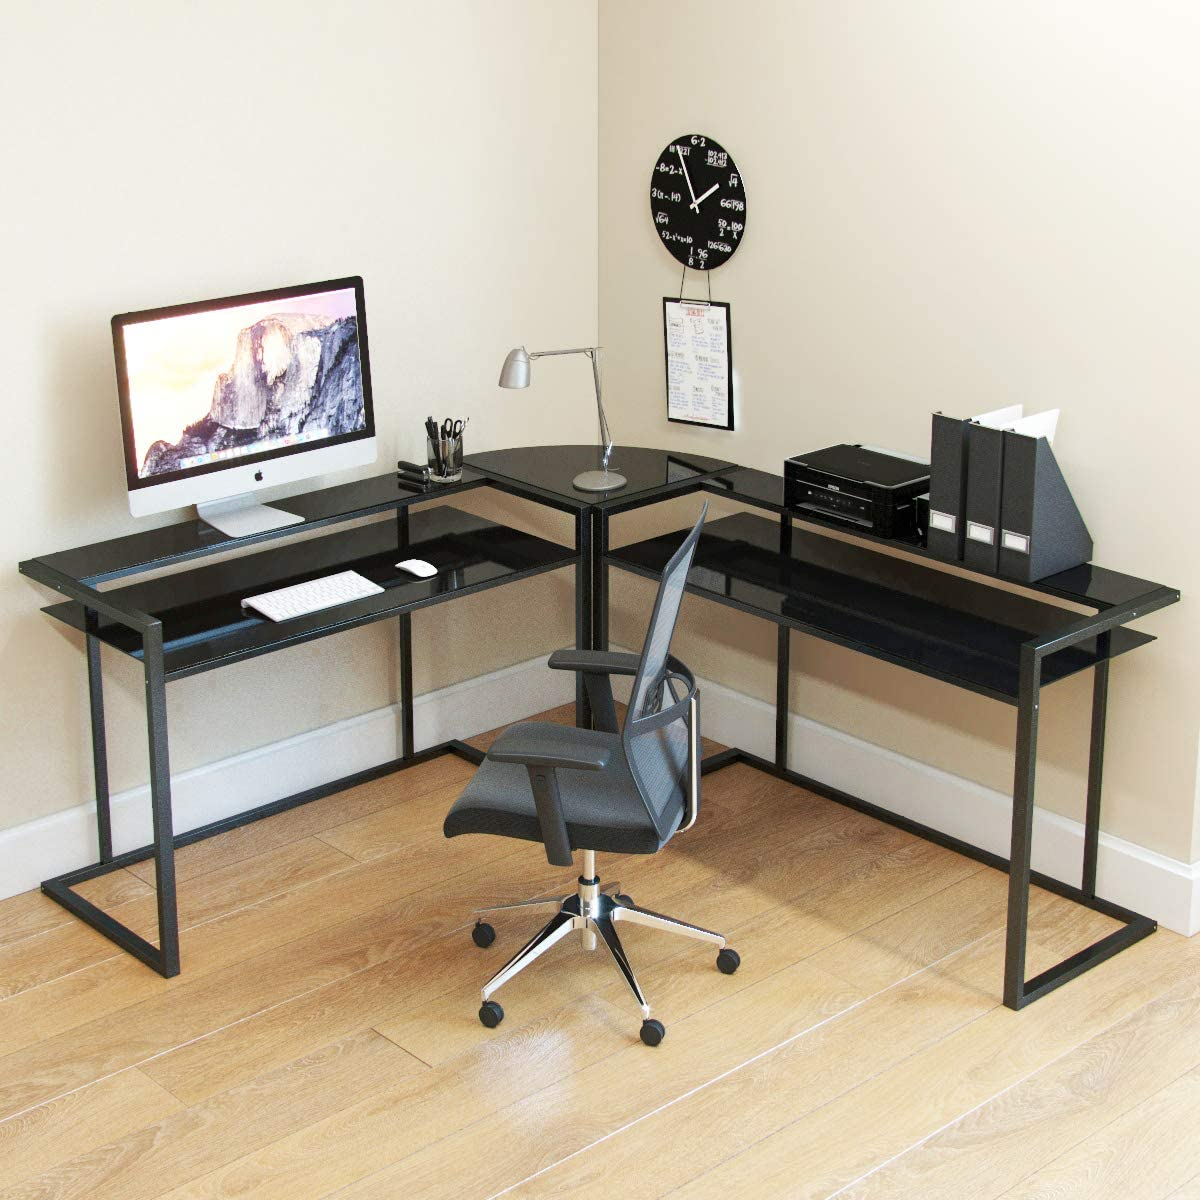 Ryan Rove Belmac Glass Large Modern L-Shaped Desk Corner Computer Office Desk for Small PC Laptop Study Table Workstation Home Office with Keyboard Shelf – Black Frame and Black Glass